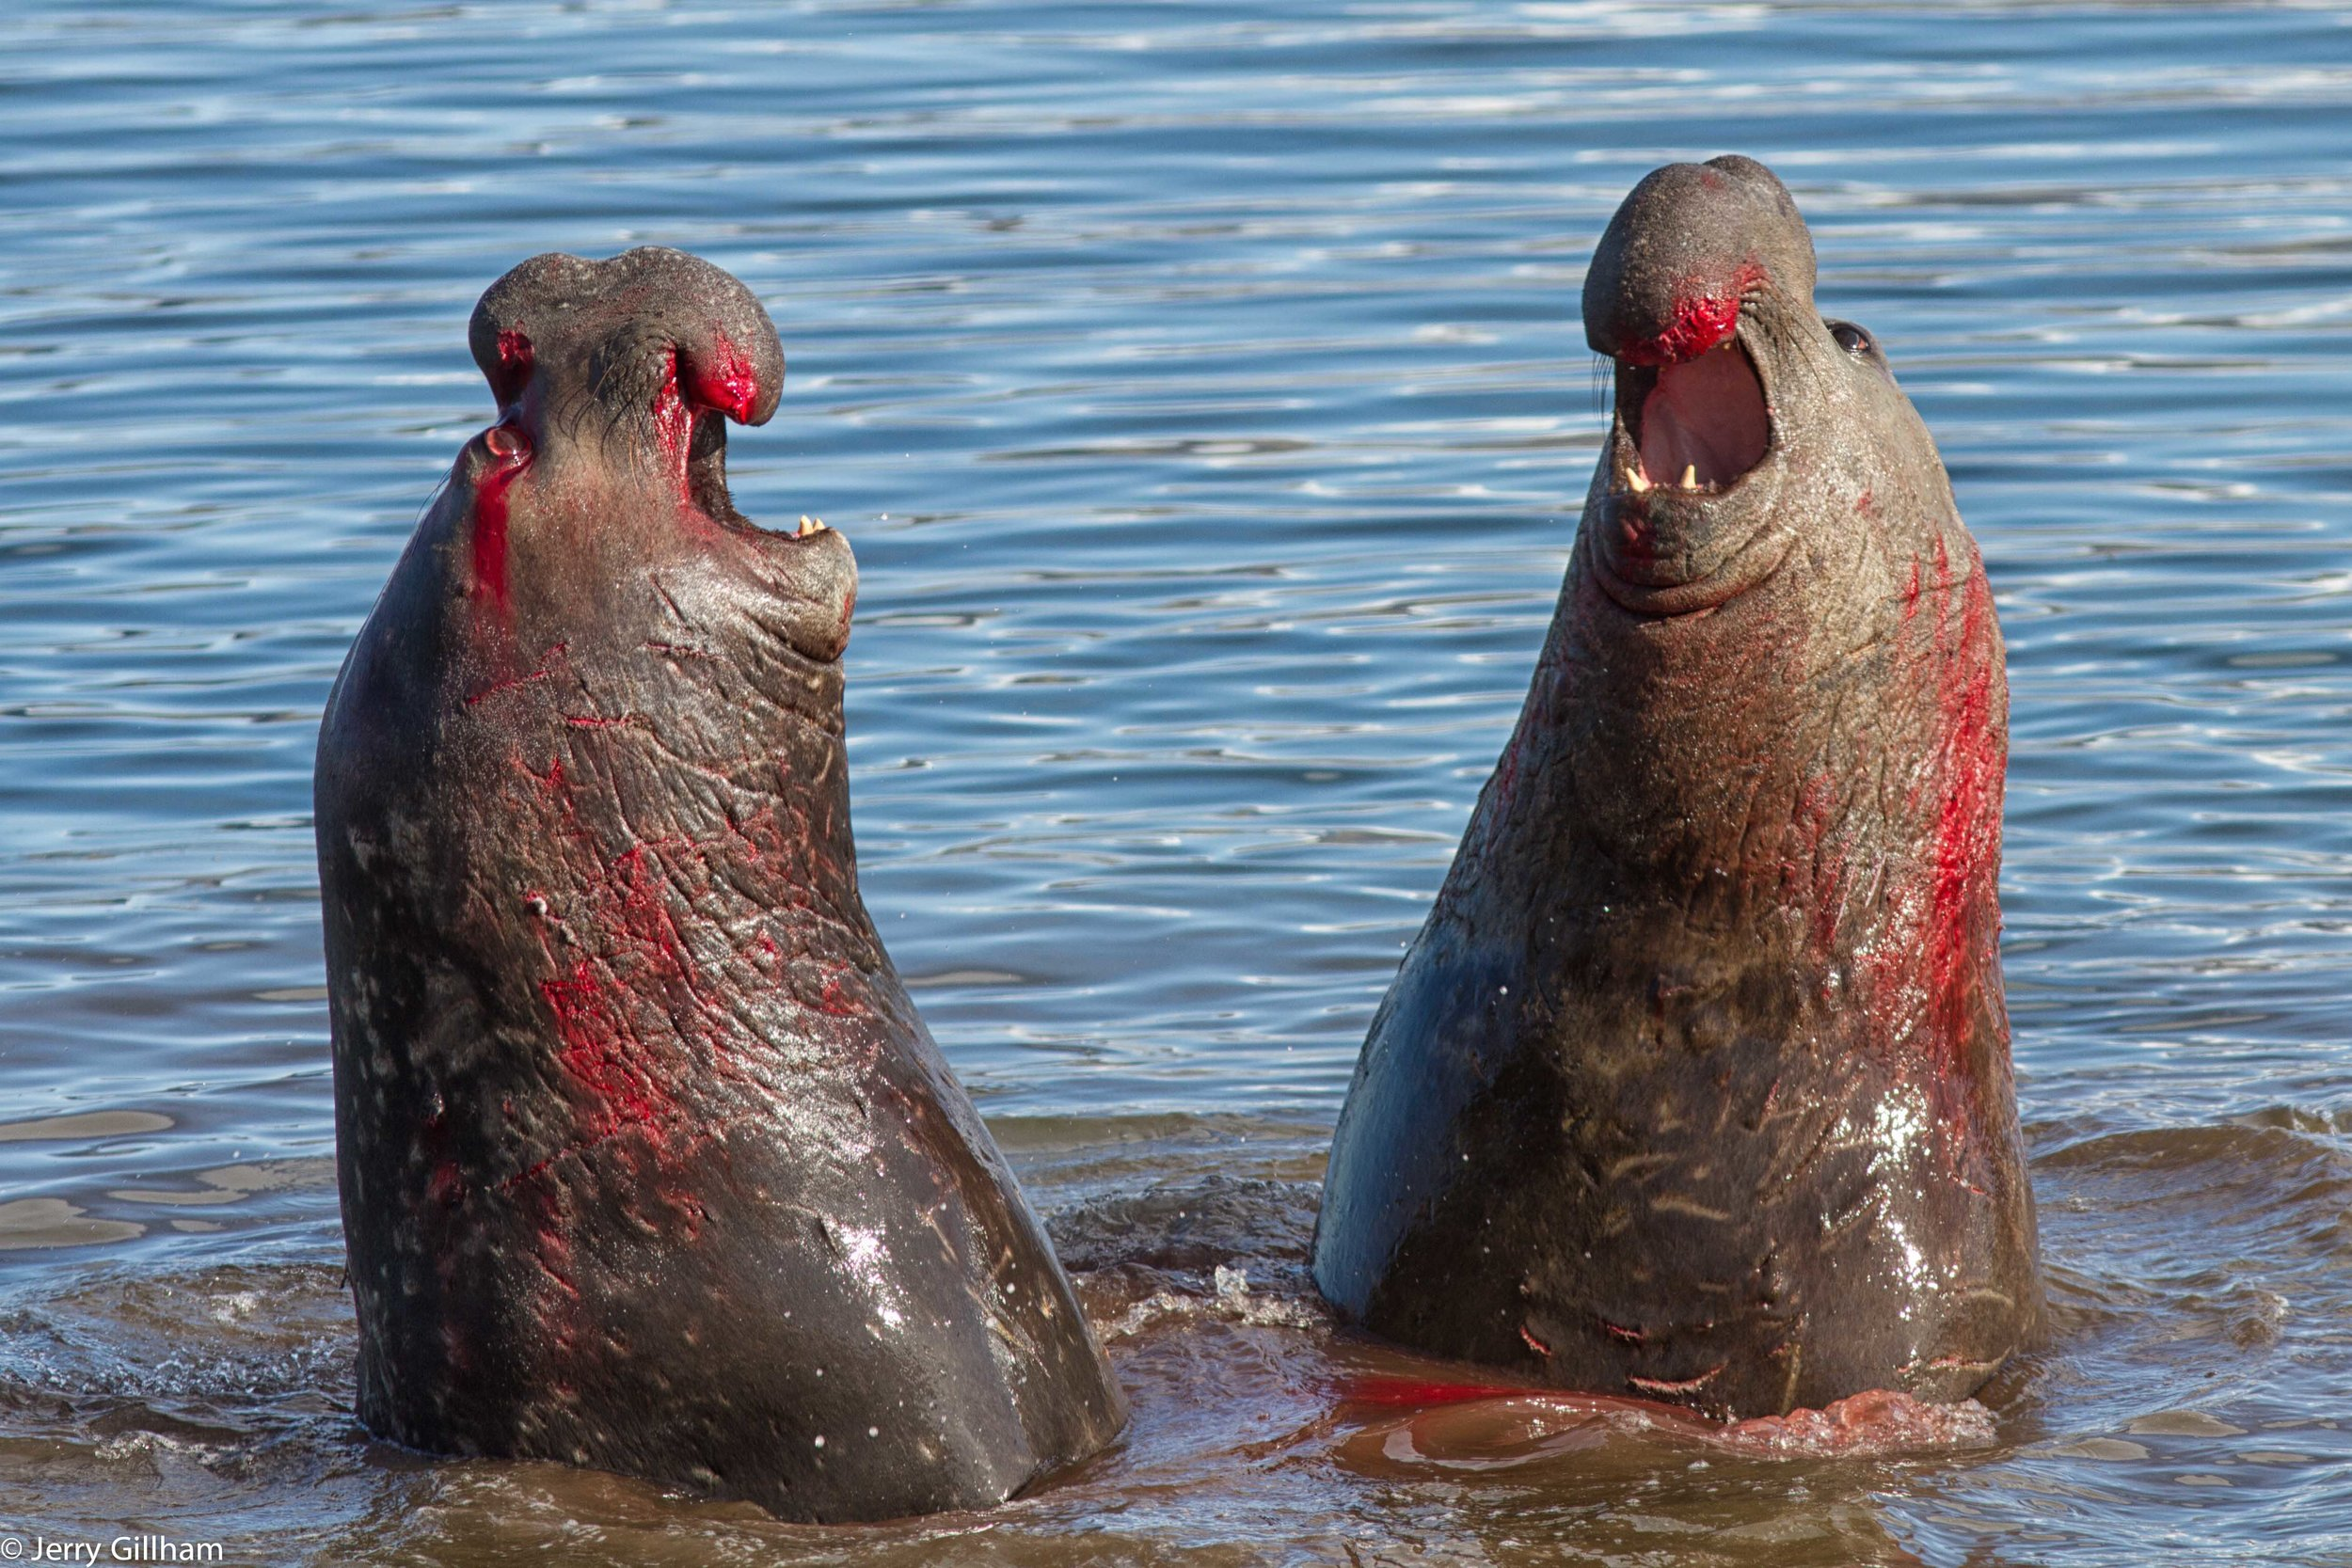 Then that afternoon I was just chatting to Paula in the dining room when we both noticed these two big bull elephant seals facing off outside the window. Normally it's all an act with them, the smaller one quickly realises it's not worth getting involved in a scrap and backs off, but these two were pretty evenly matched and it became clear both were intent on claiming this patch of beach for themselves.